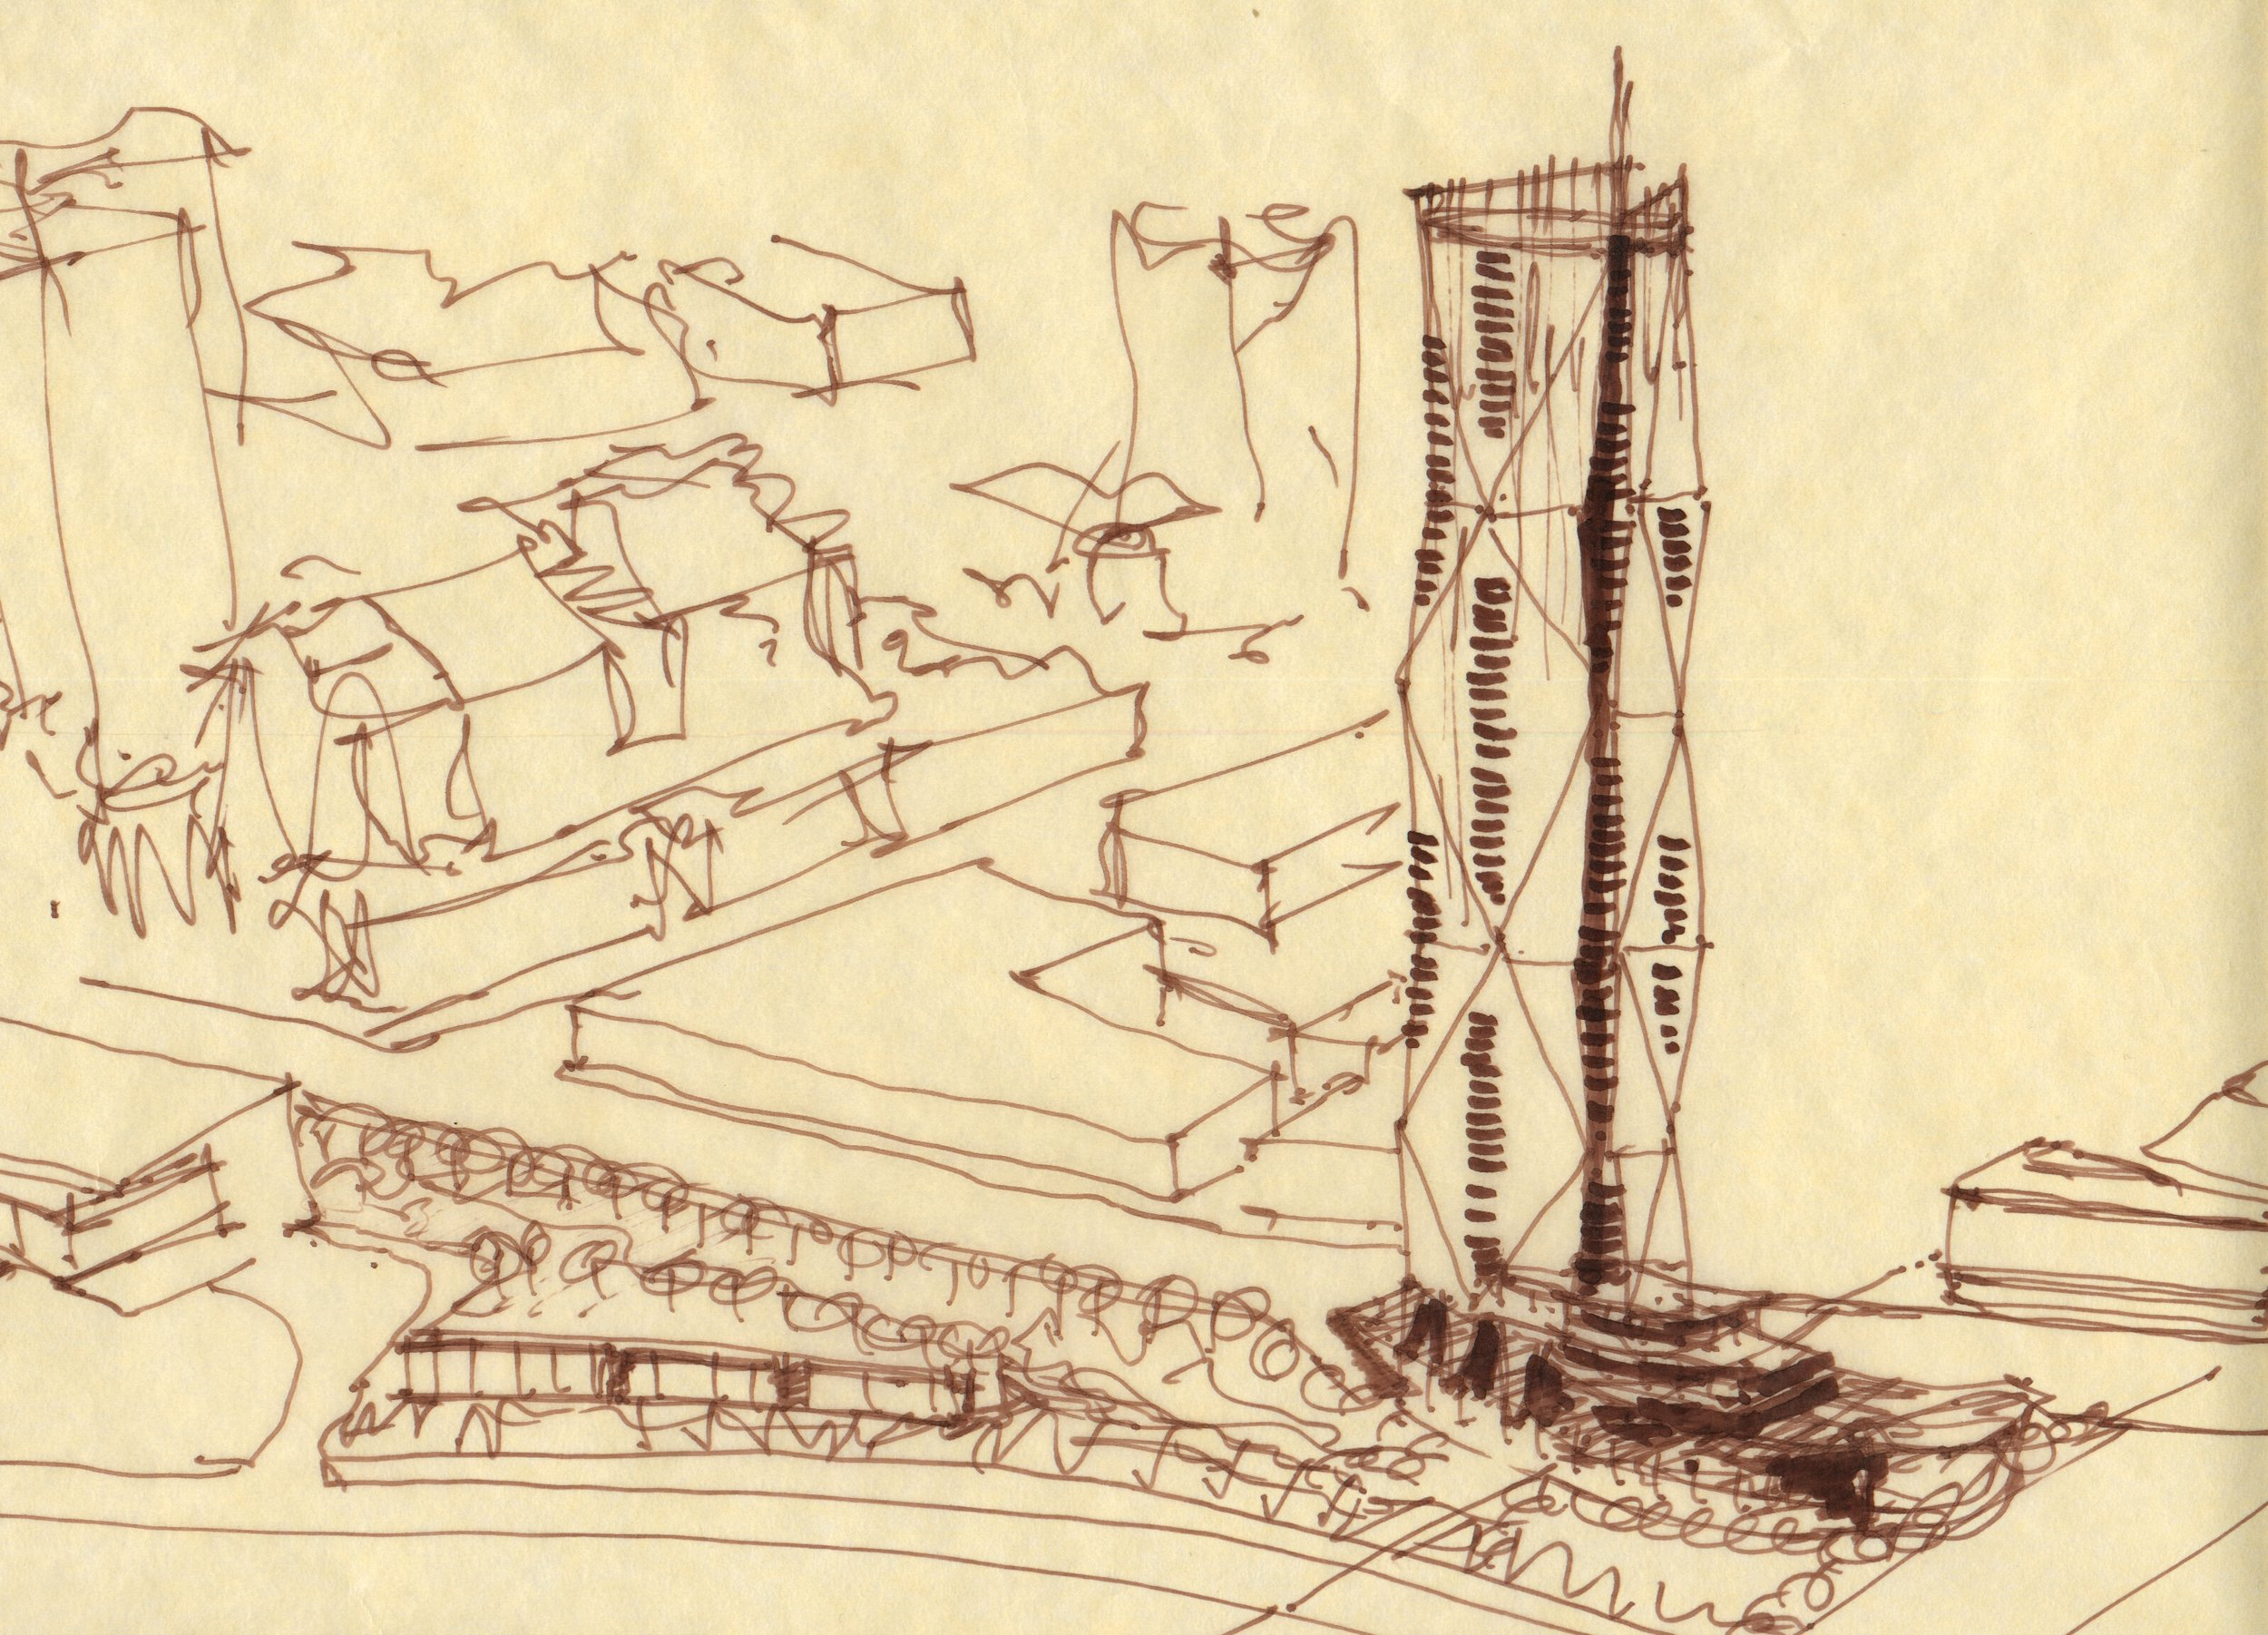 Quarters Hotel + Condominiums - Urban view study - 6